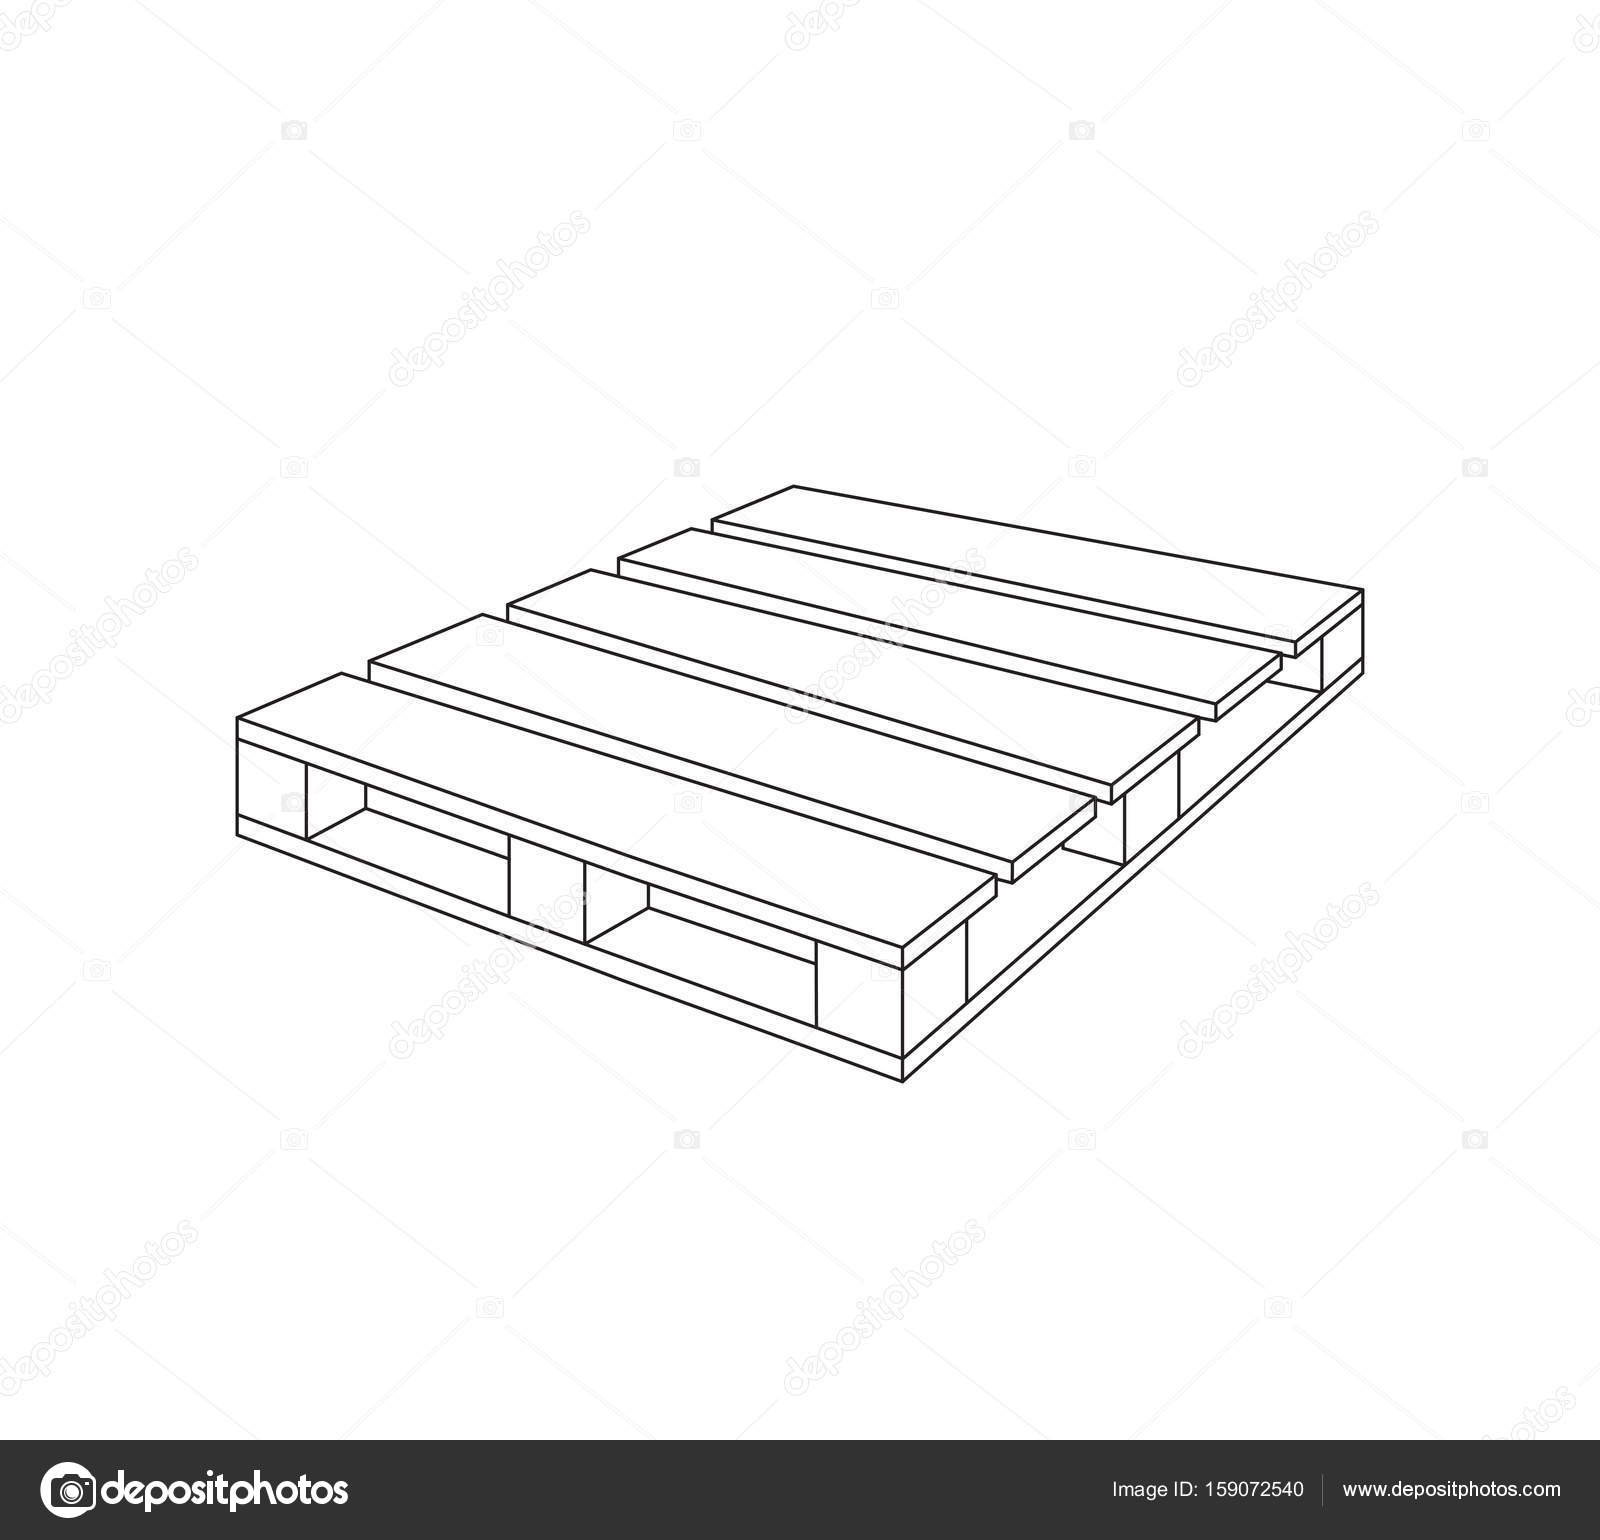 Diagram Of A Wooden Pallet